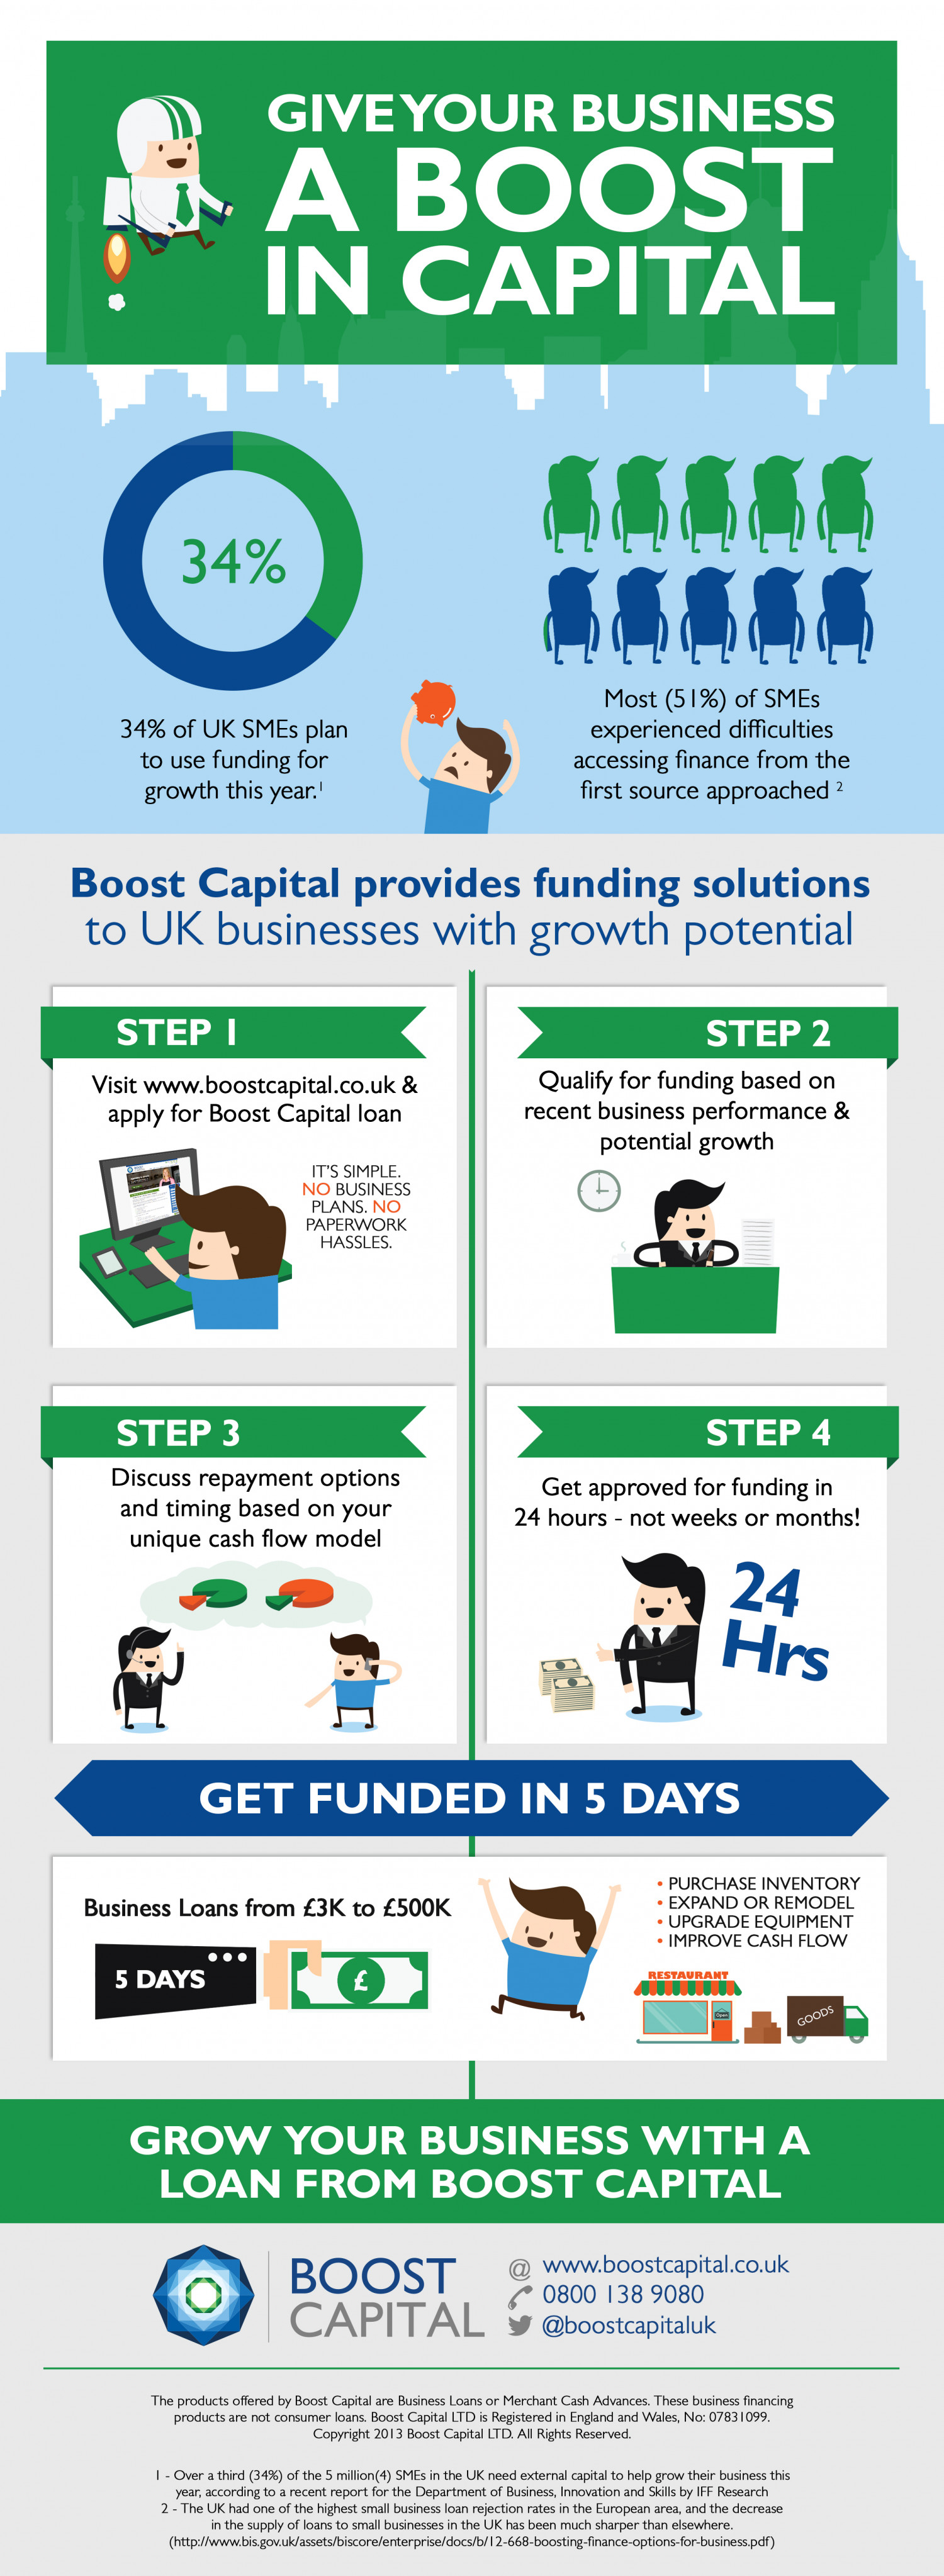 Give Your Business a Boost in Capital Infographic